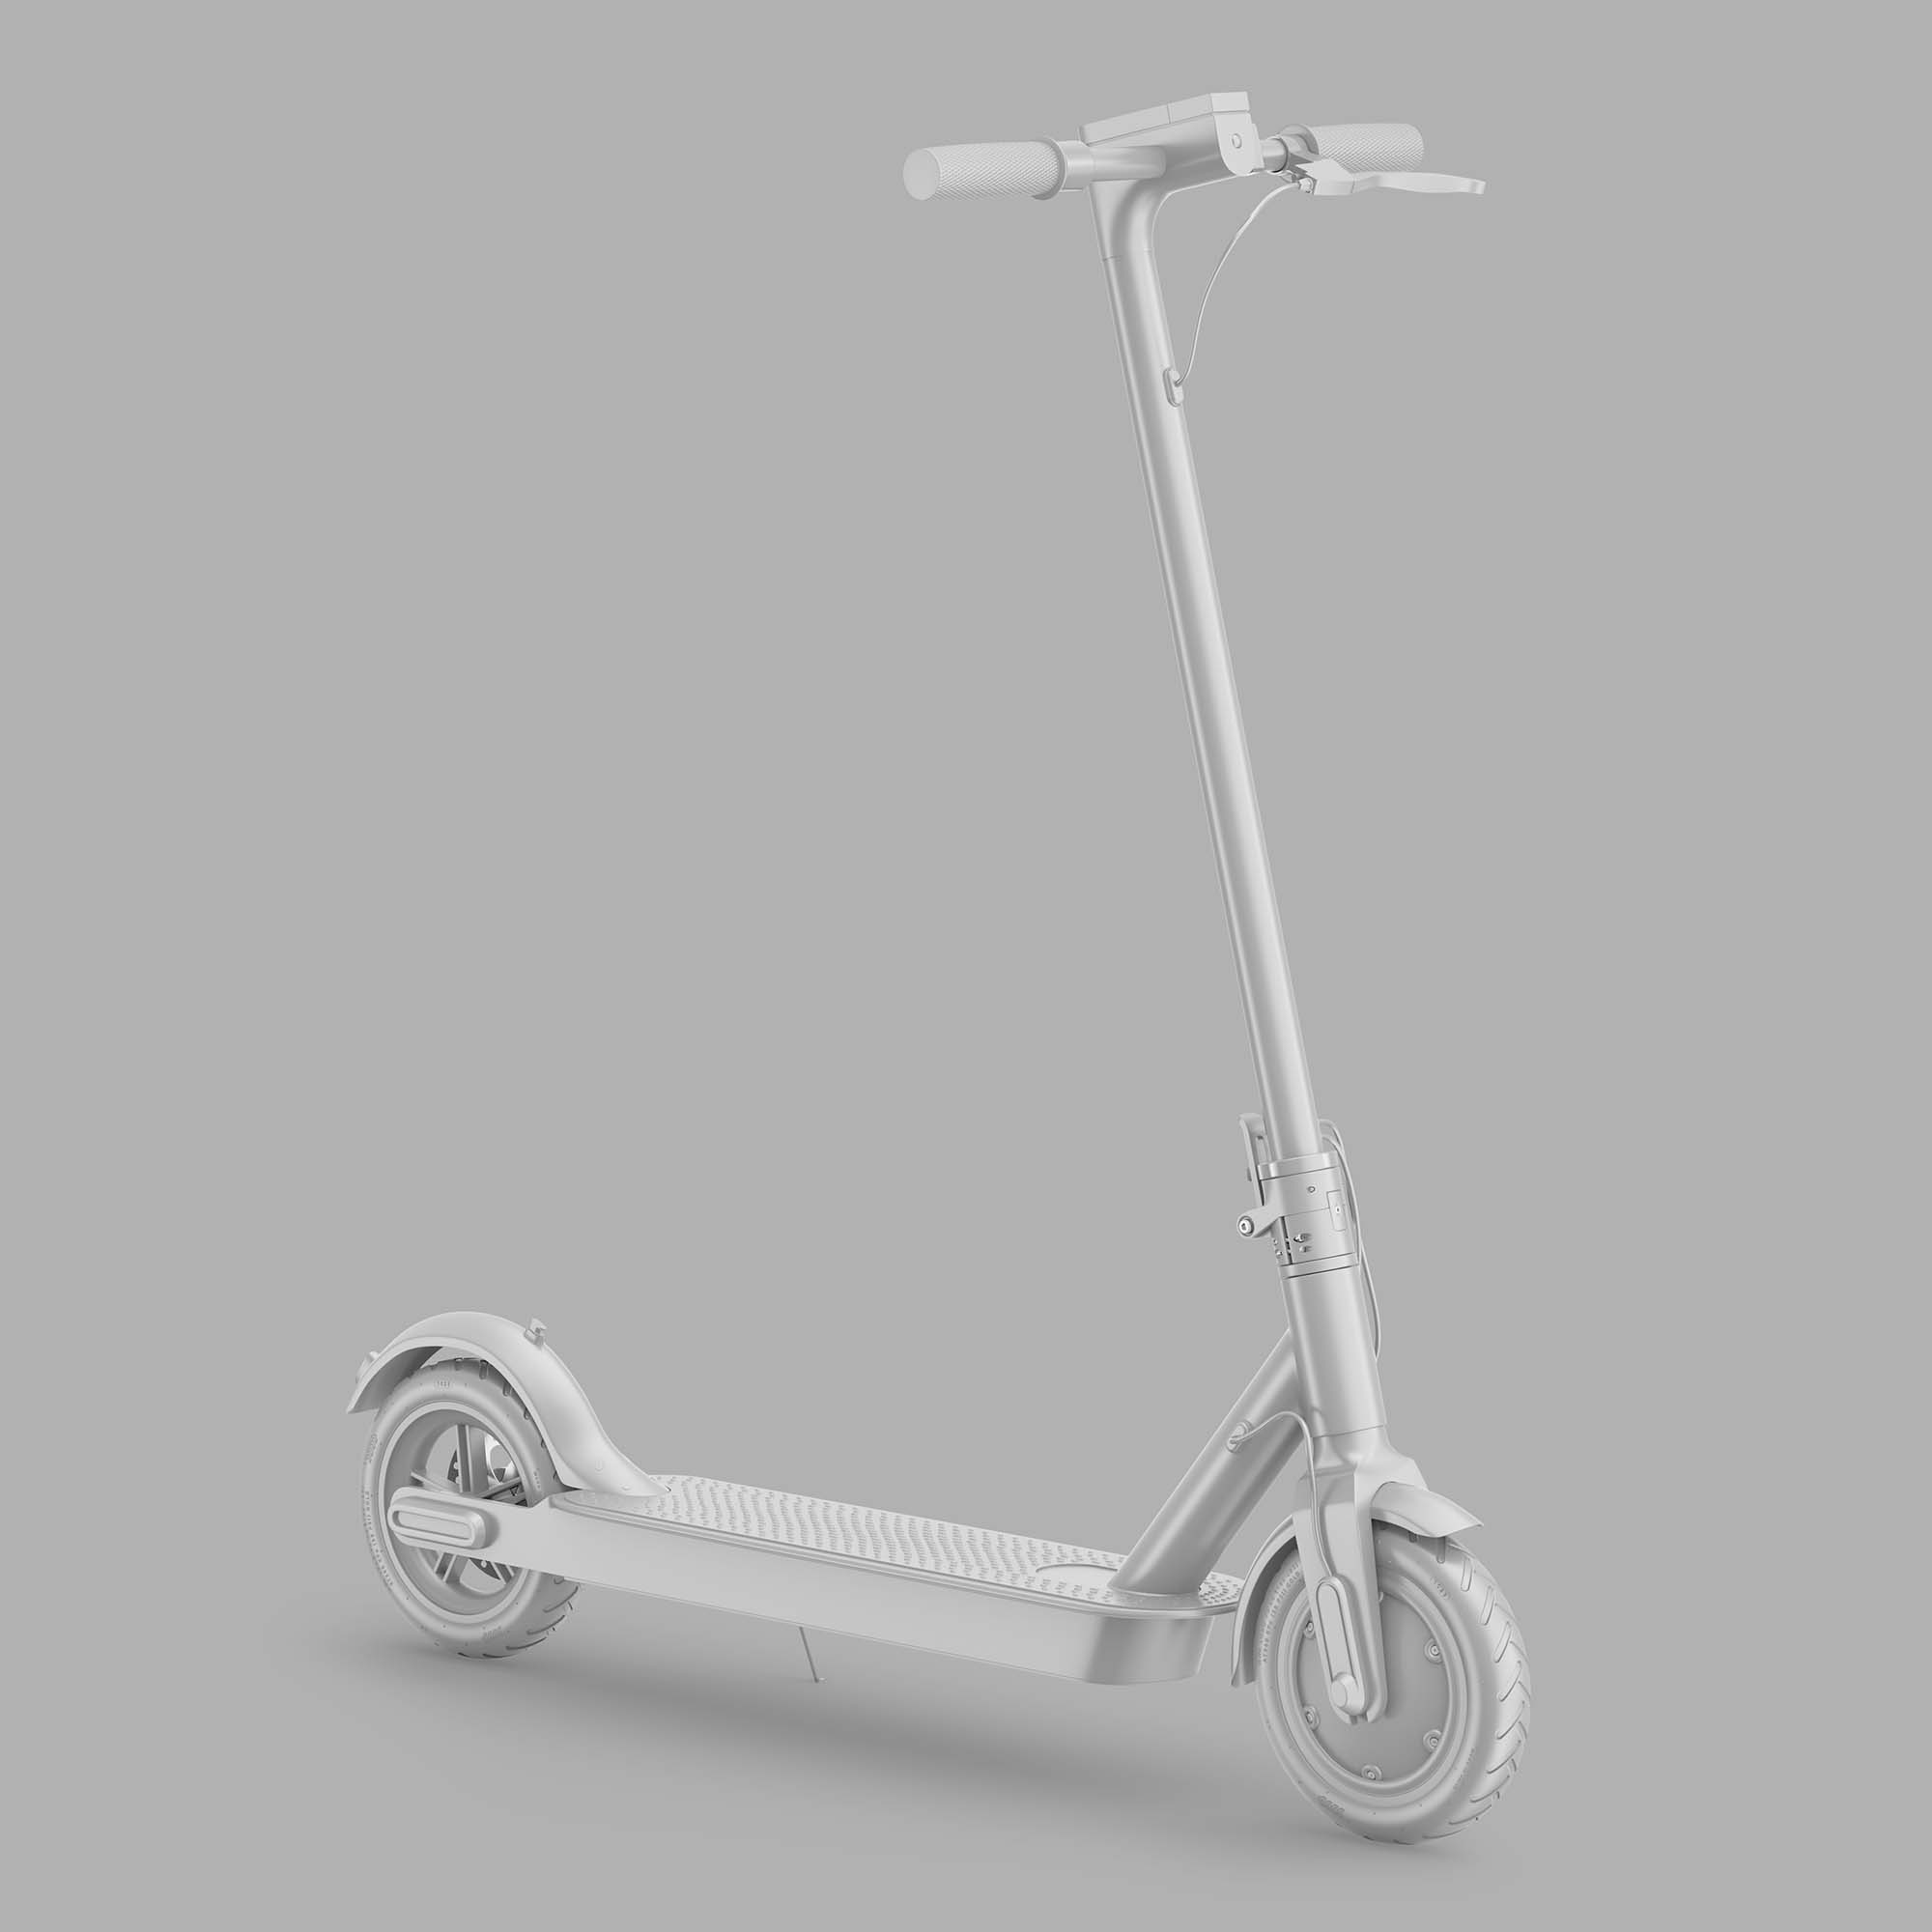 Electric Scooter Mockup 2